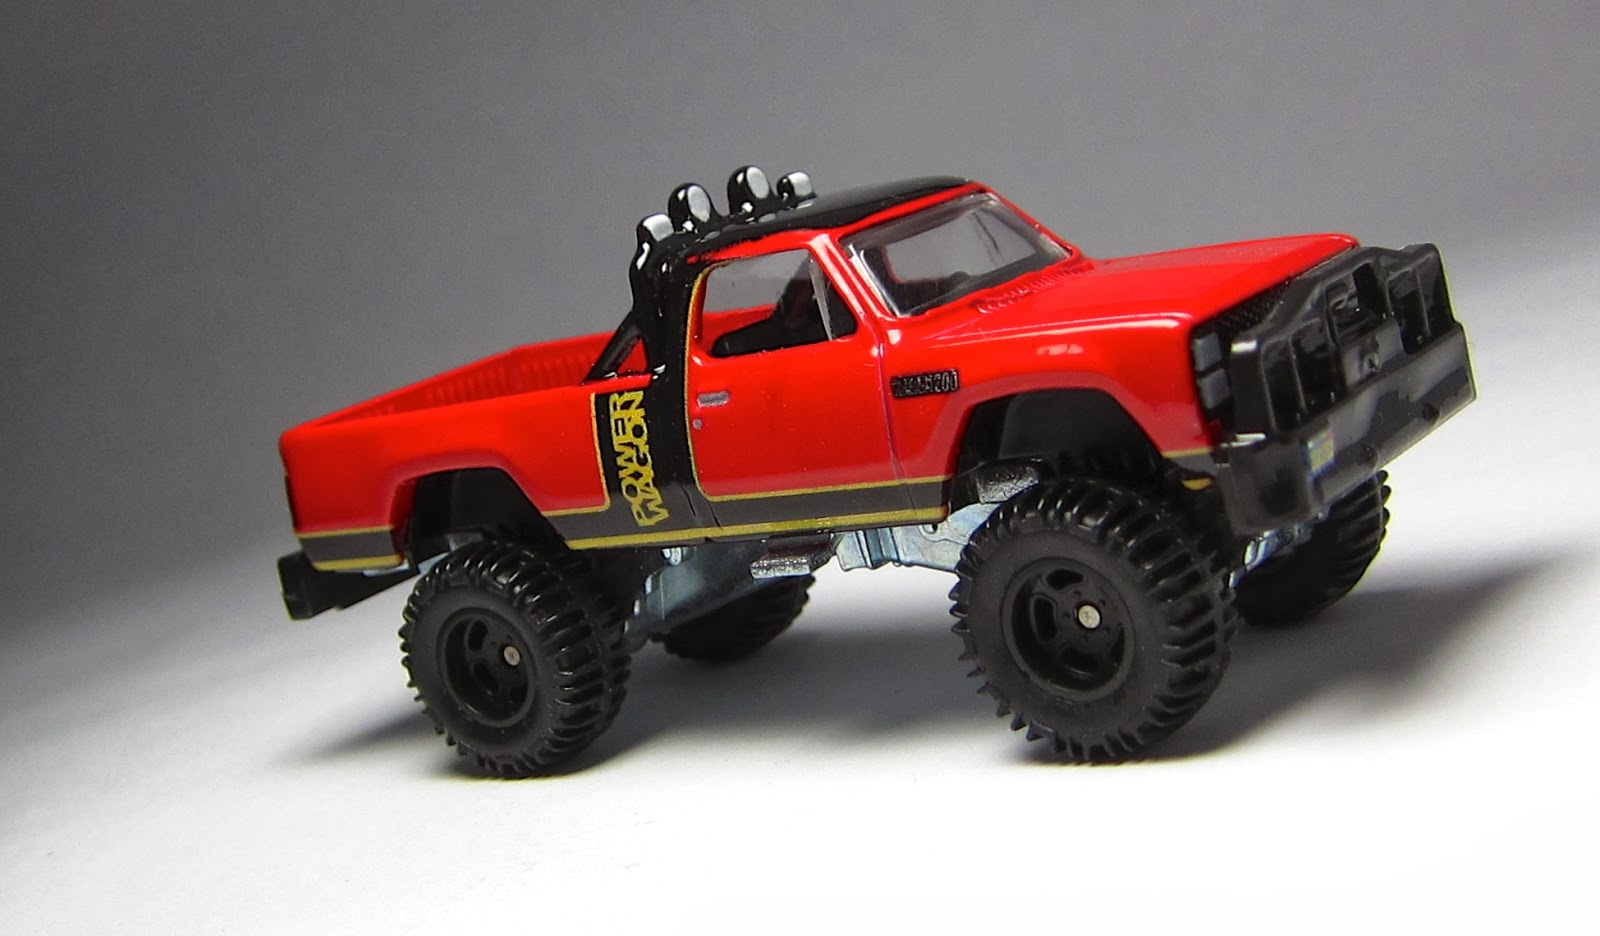 1980 Dodge Pickup Truck First Look Hot Wheels Retro Entertainment Macho Power Wagon And Other Badass Trucks